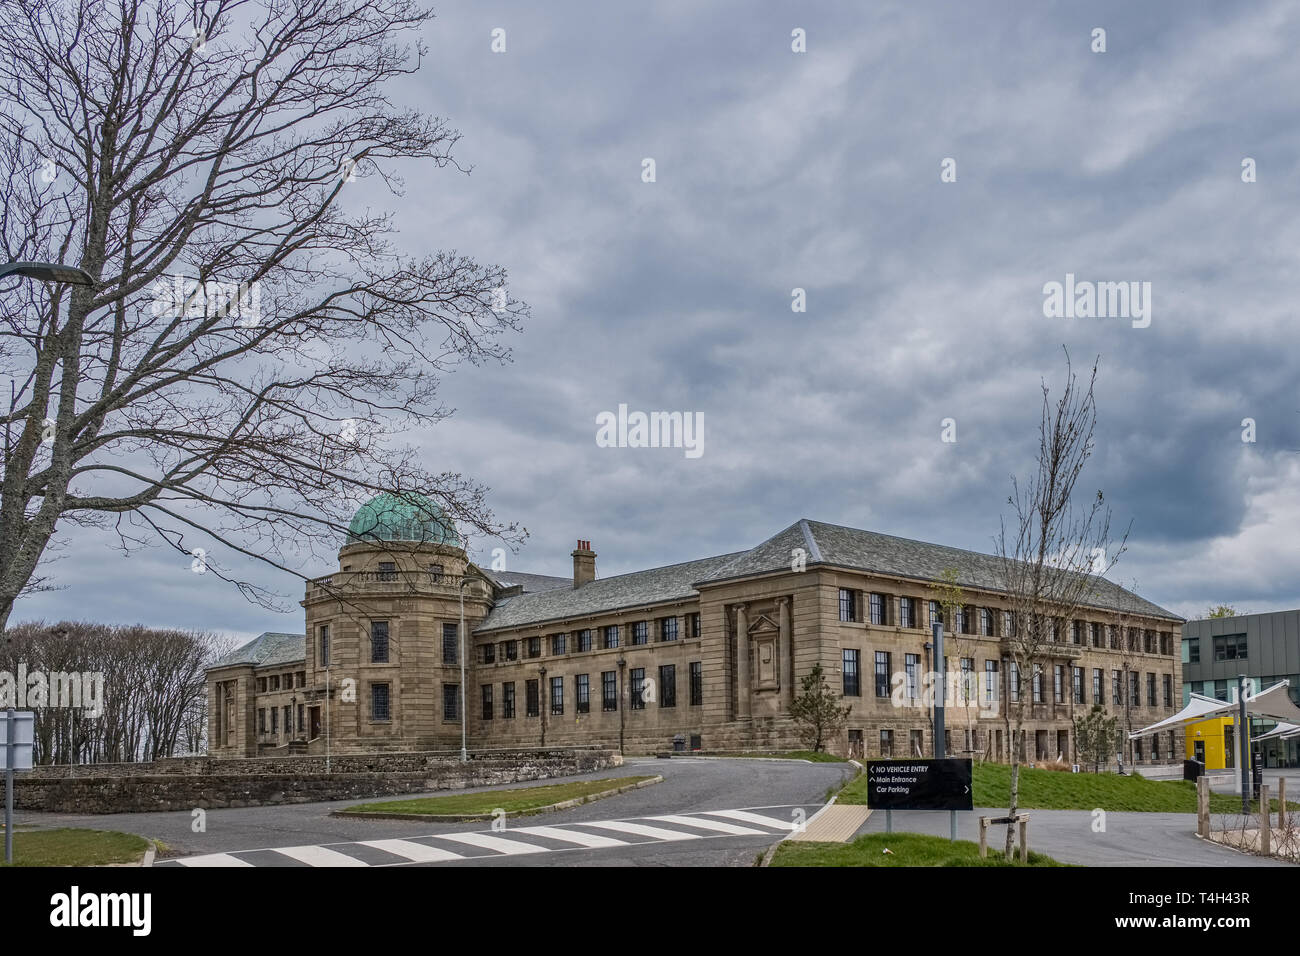 Troon, Scotland, UK - April 14, 2019: The impressive buildings of Marr College a state funded secondary school. It is owned by the Marr Trust and is o - Stock Image